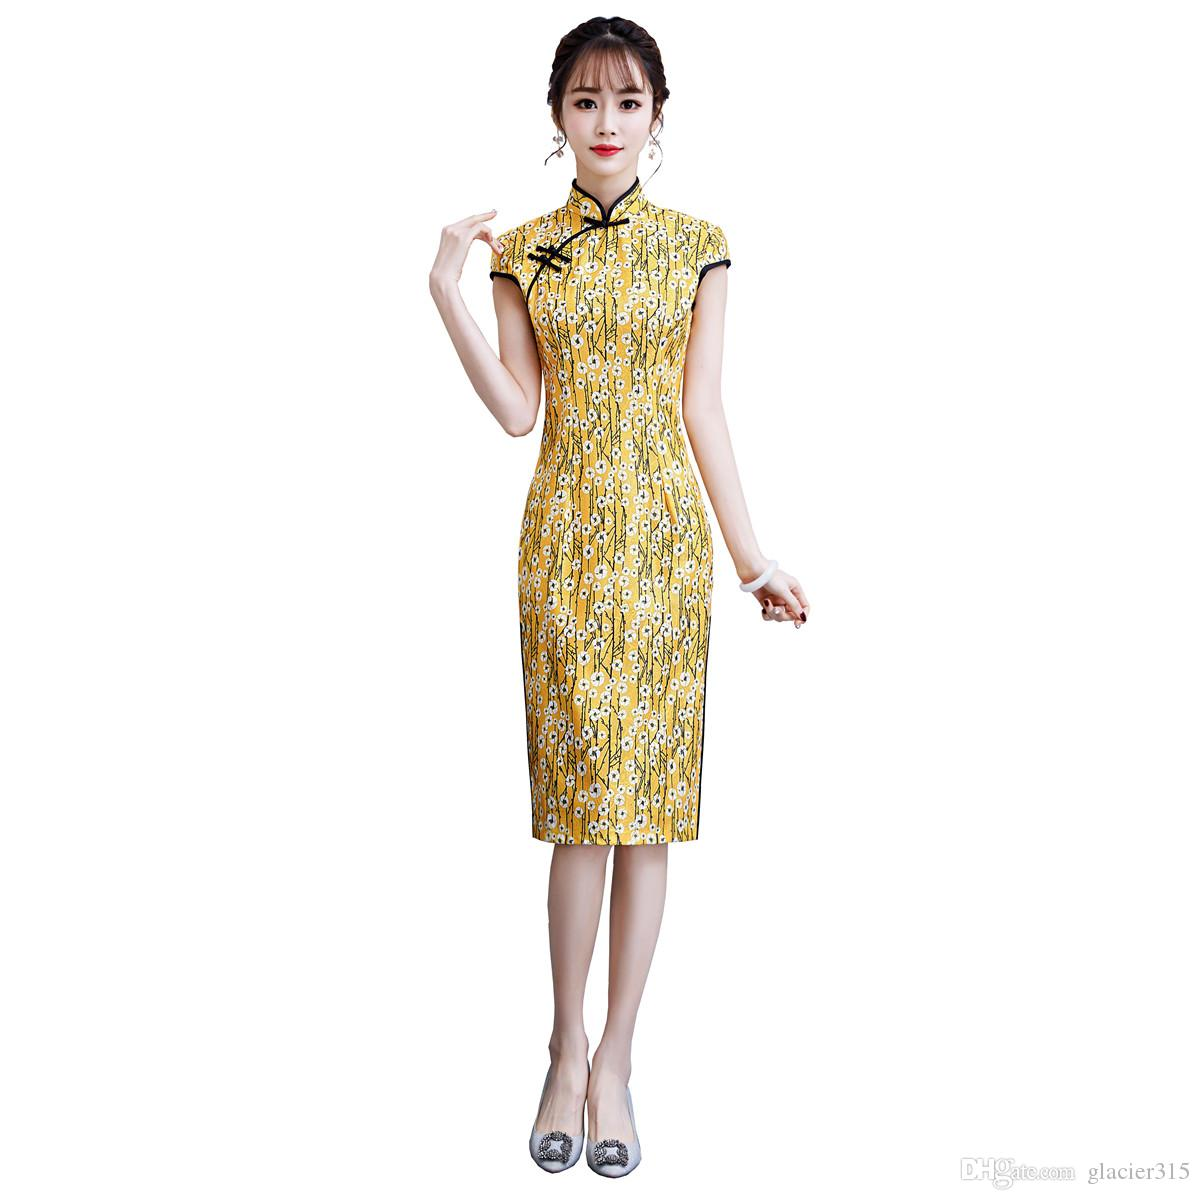 ad08de5ac Shanghai Story Knee Length Qipao Faux Silk Chinese Traditional Dress  Oriental dress Chinese Women's Clothing Lace Cheongsam